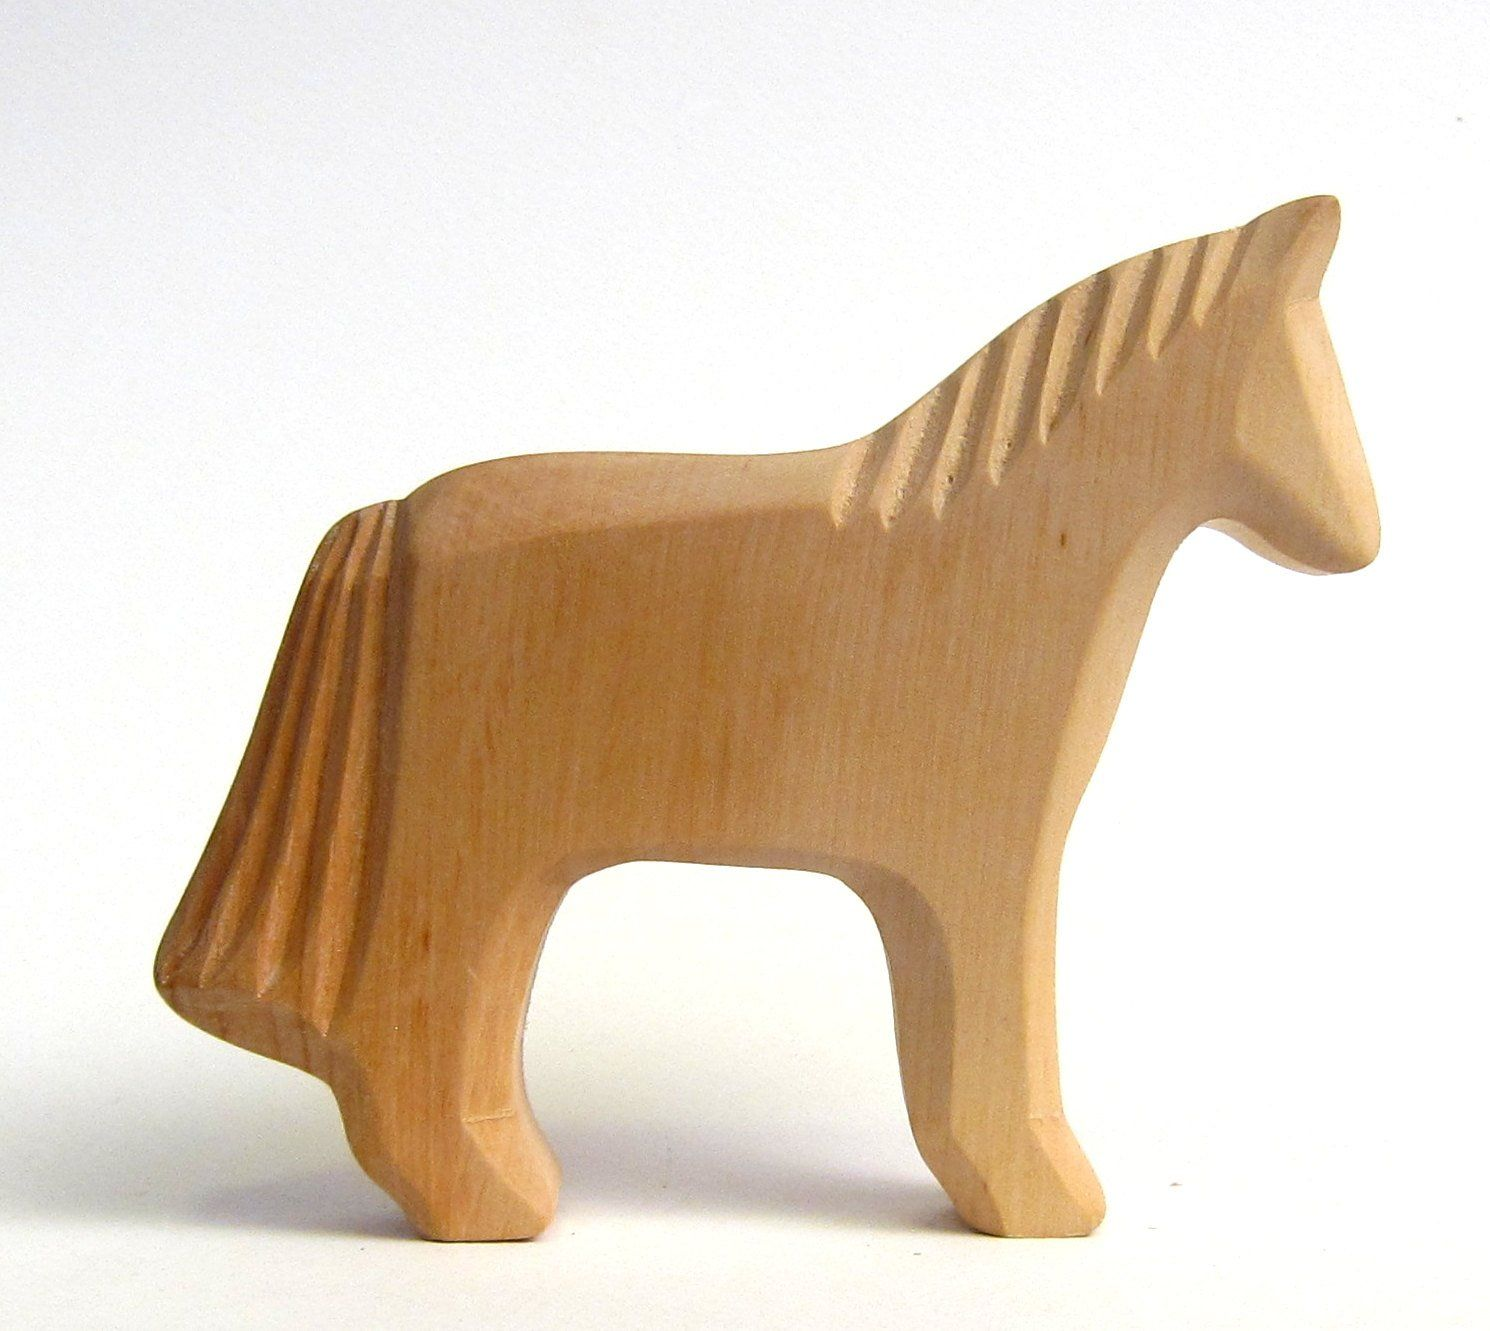 Toy Horse Organic Baby Toys Eco Products Useful Baby Gifts Wooden Animals Farm Animals Toddler Toys Eco Friendly Baby Game